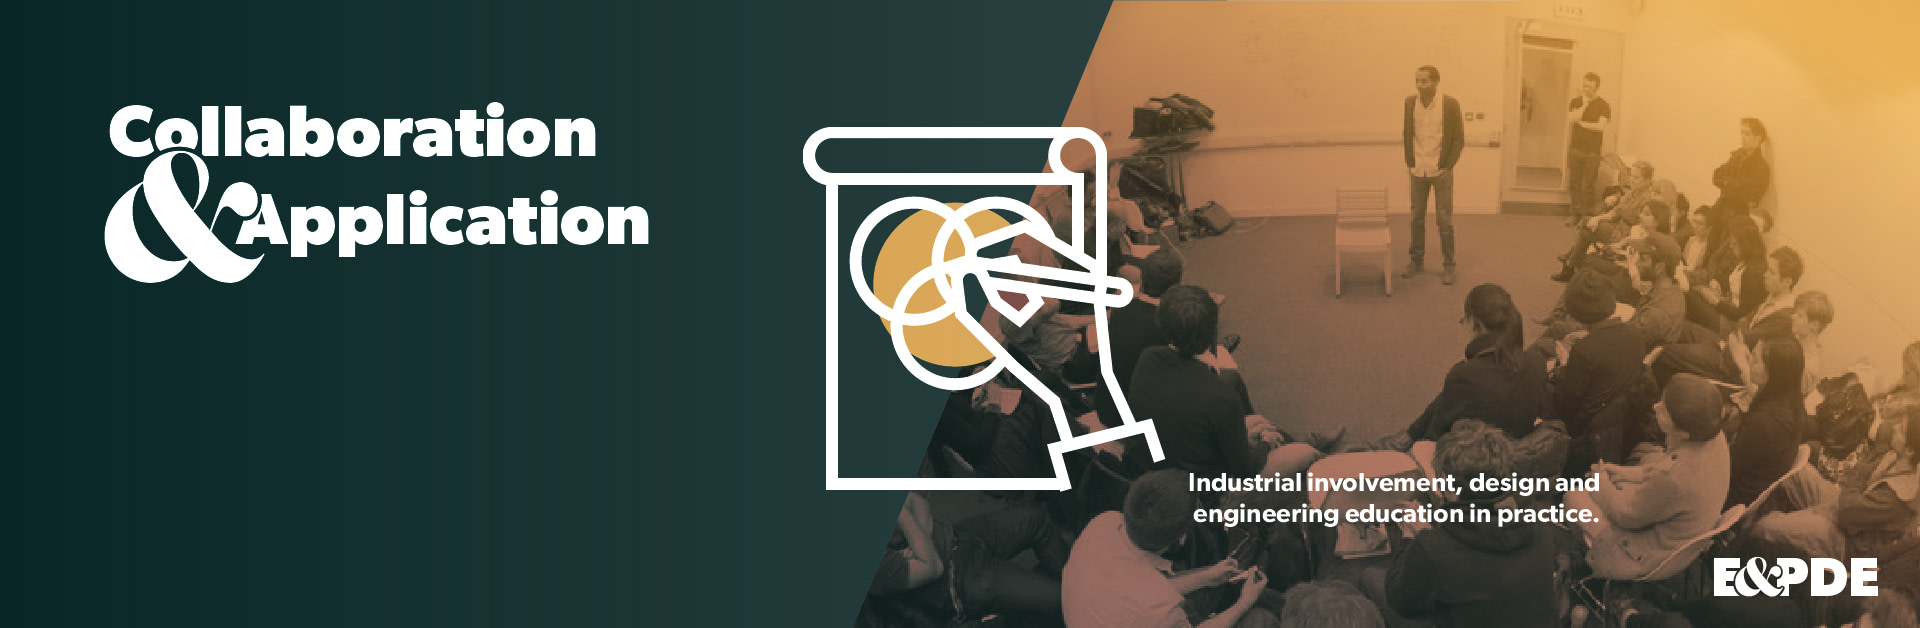 E&PDE 2018 | 20th International Conference on Engineering & Product Design Education